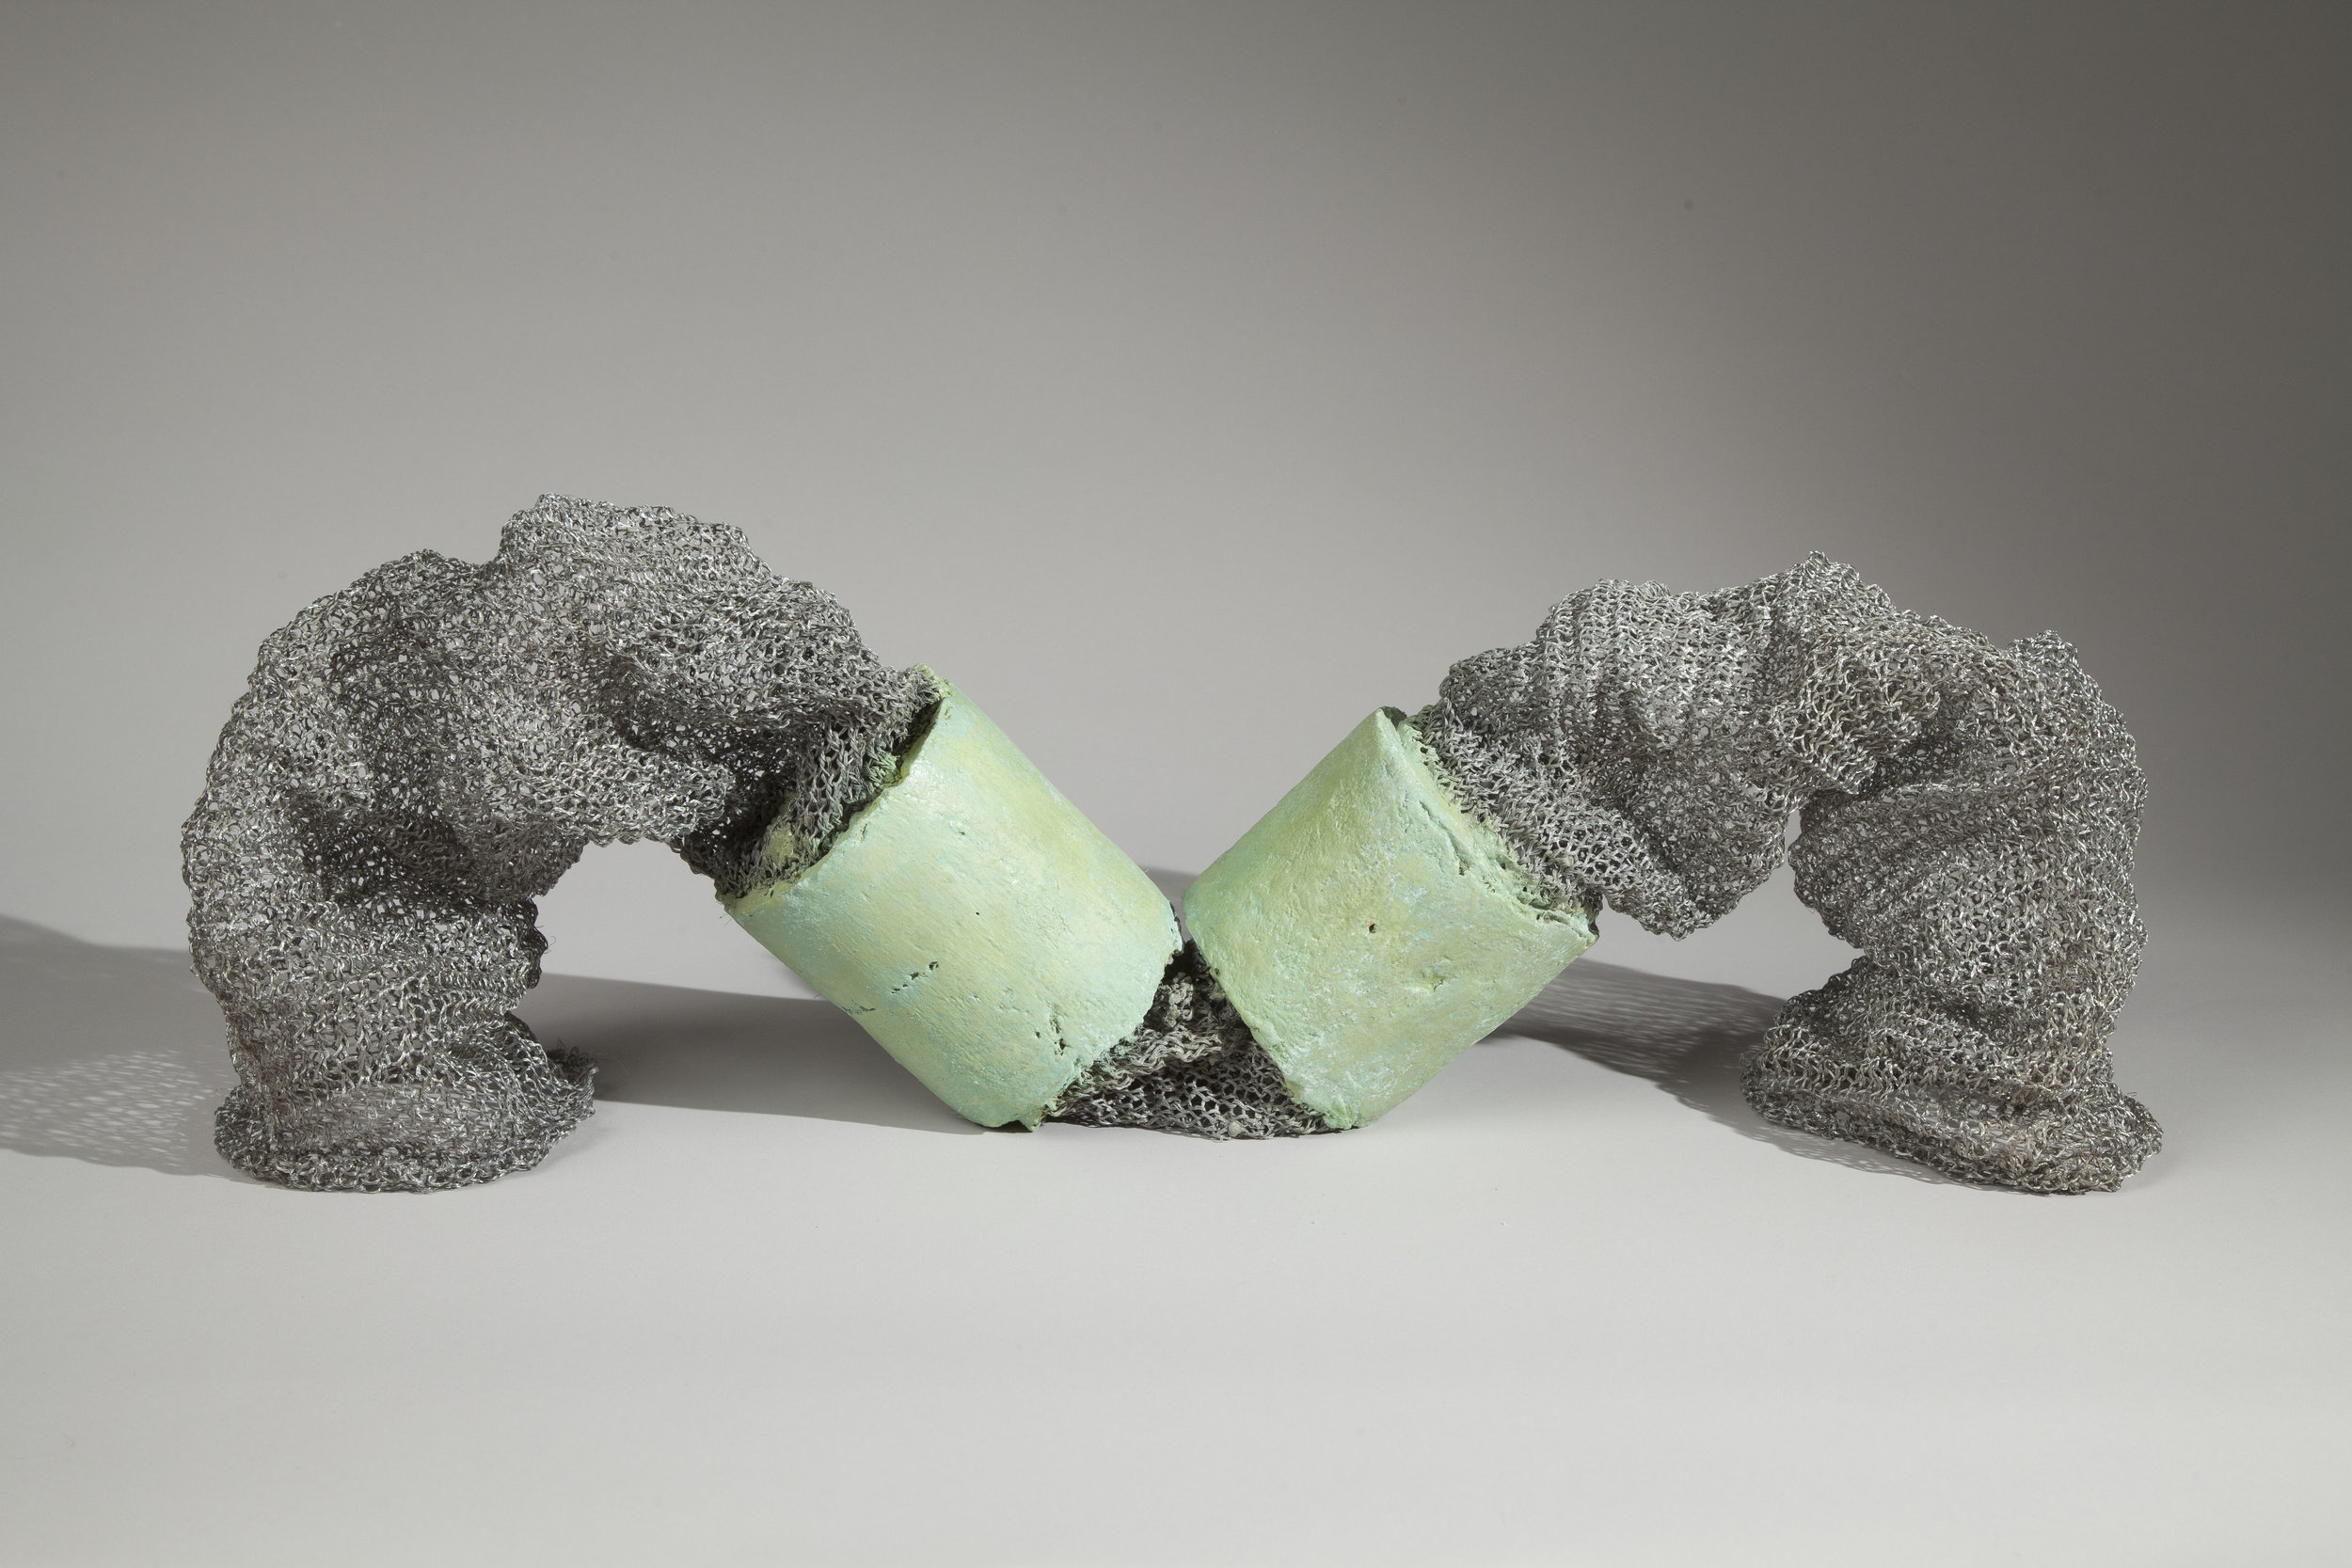 Ooze , 2016, cast concrete, pigments, and reclaimed metal, 9 x 22 x 6 inches